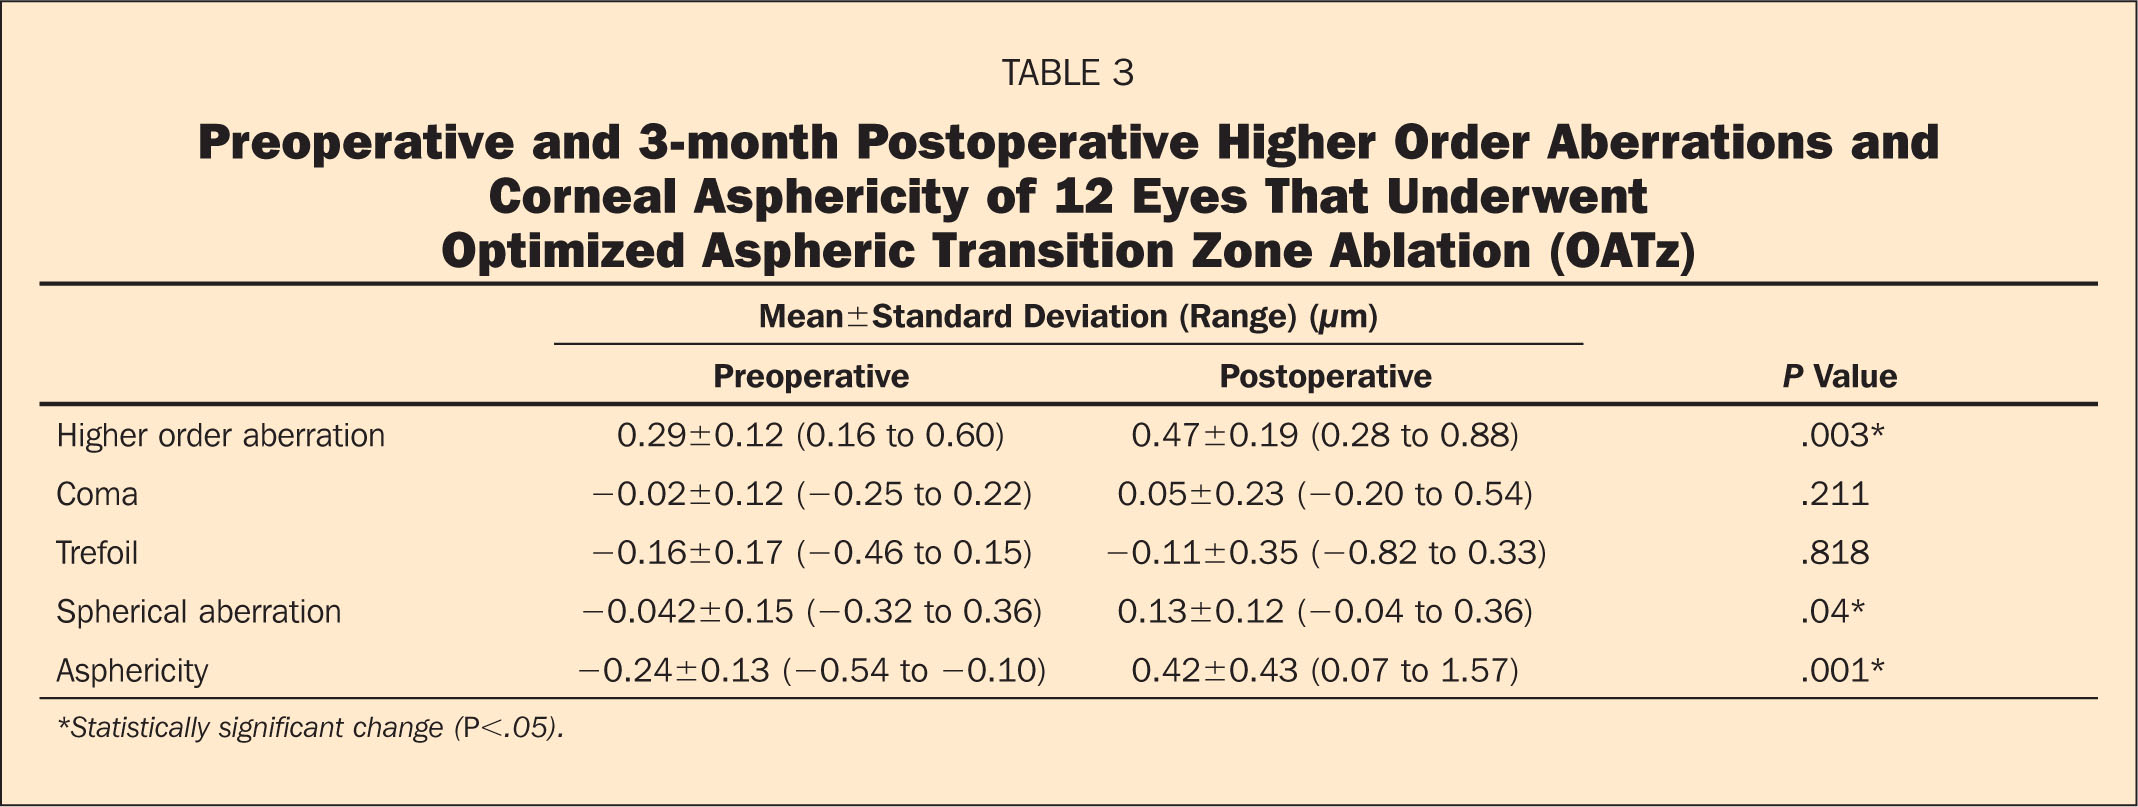 Preoperative and 3-Month Postoperative Higher Order Aberrations and Corneal Asphericity of 12 Eyes that Underwent Optimized Aspheric Transition Zone Ablation (OATz)